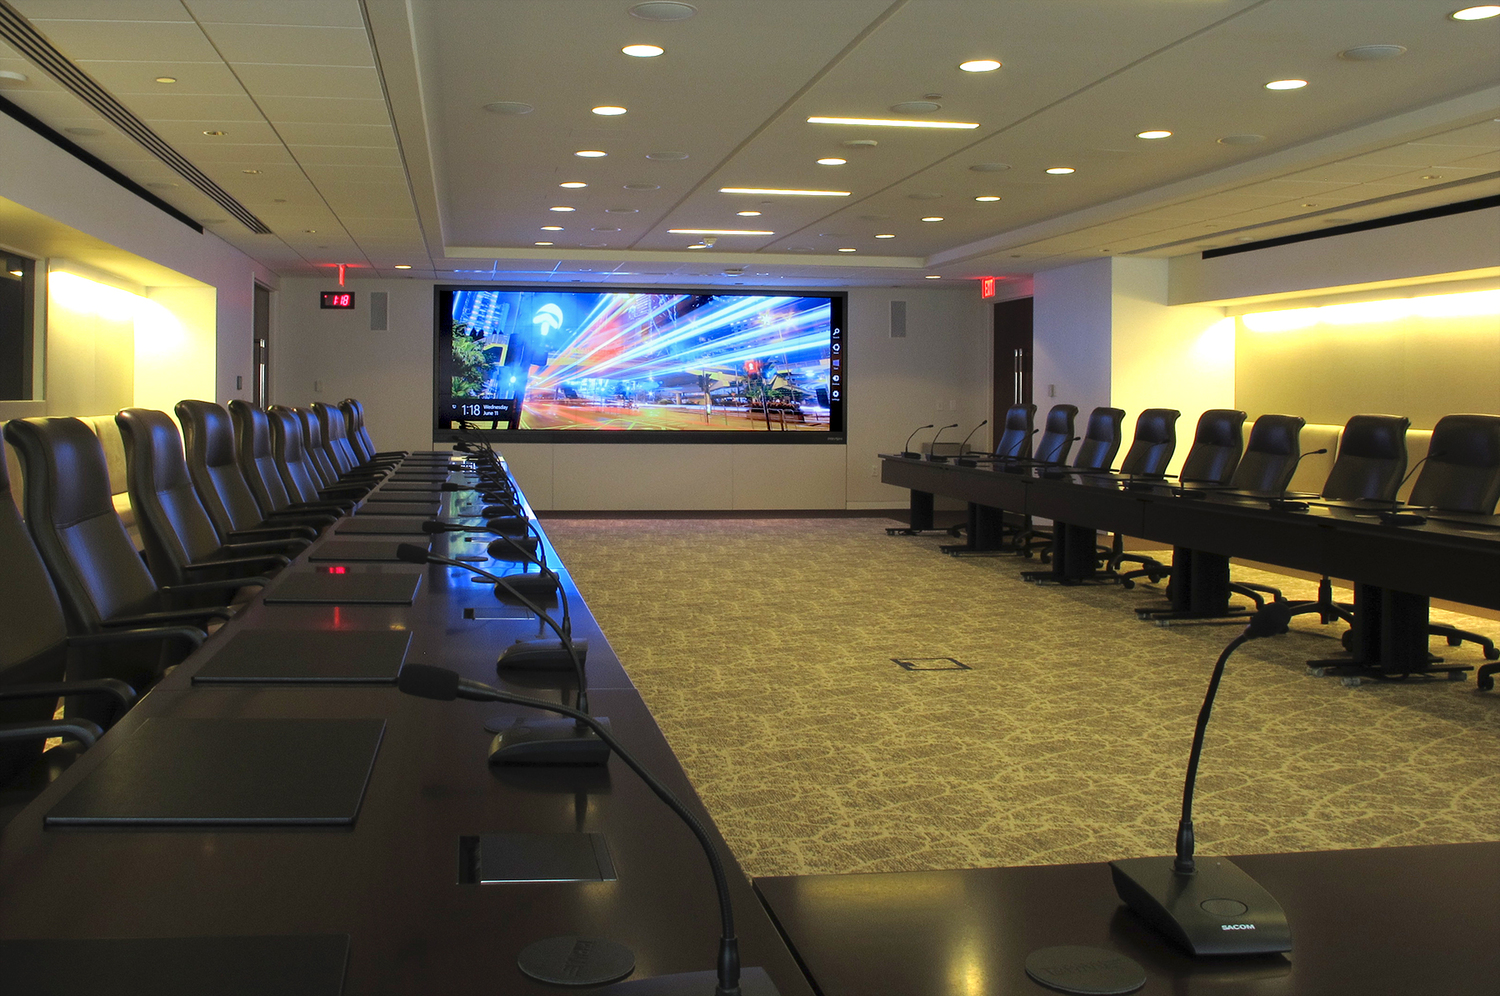 Executive Meeting Rooms with private room isolation design allowing high level discussions and easy to use.